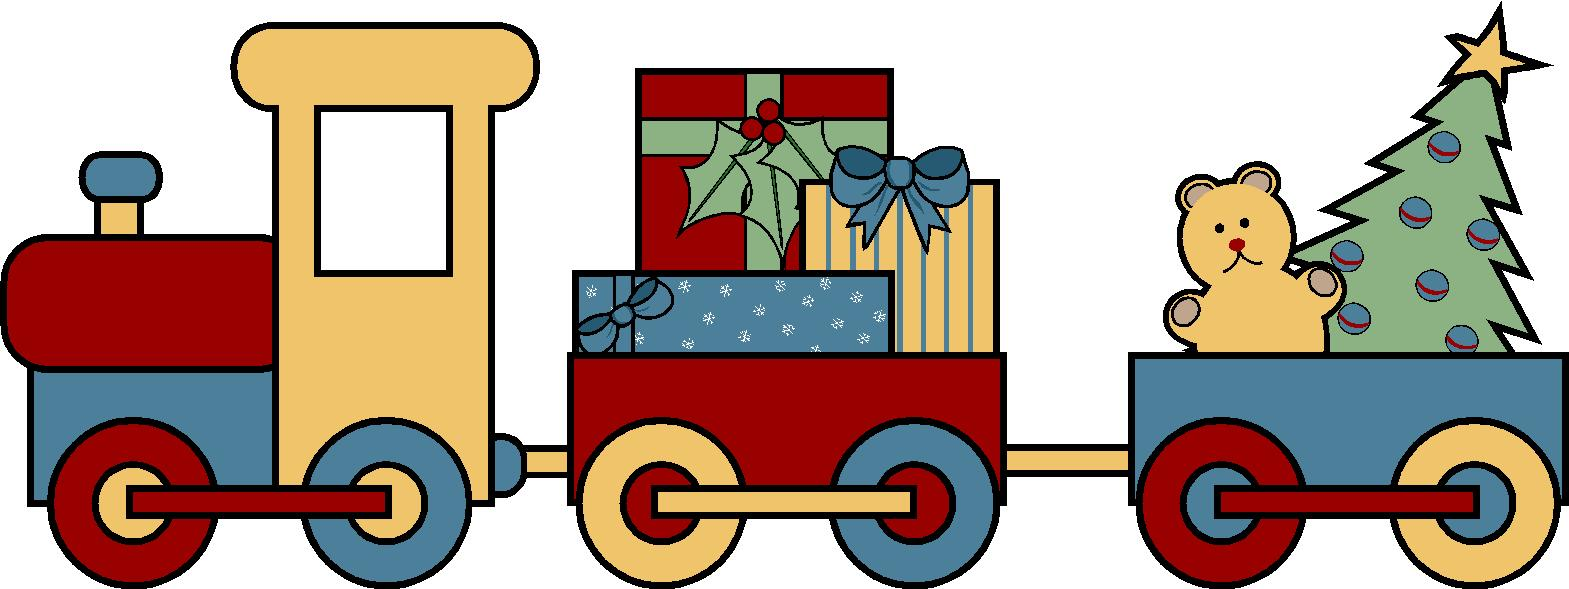 Christmas Toys Clipart at GetDrawings.com.